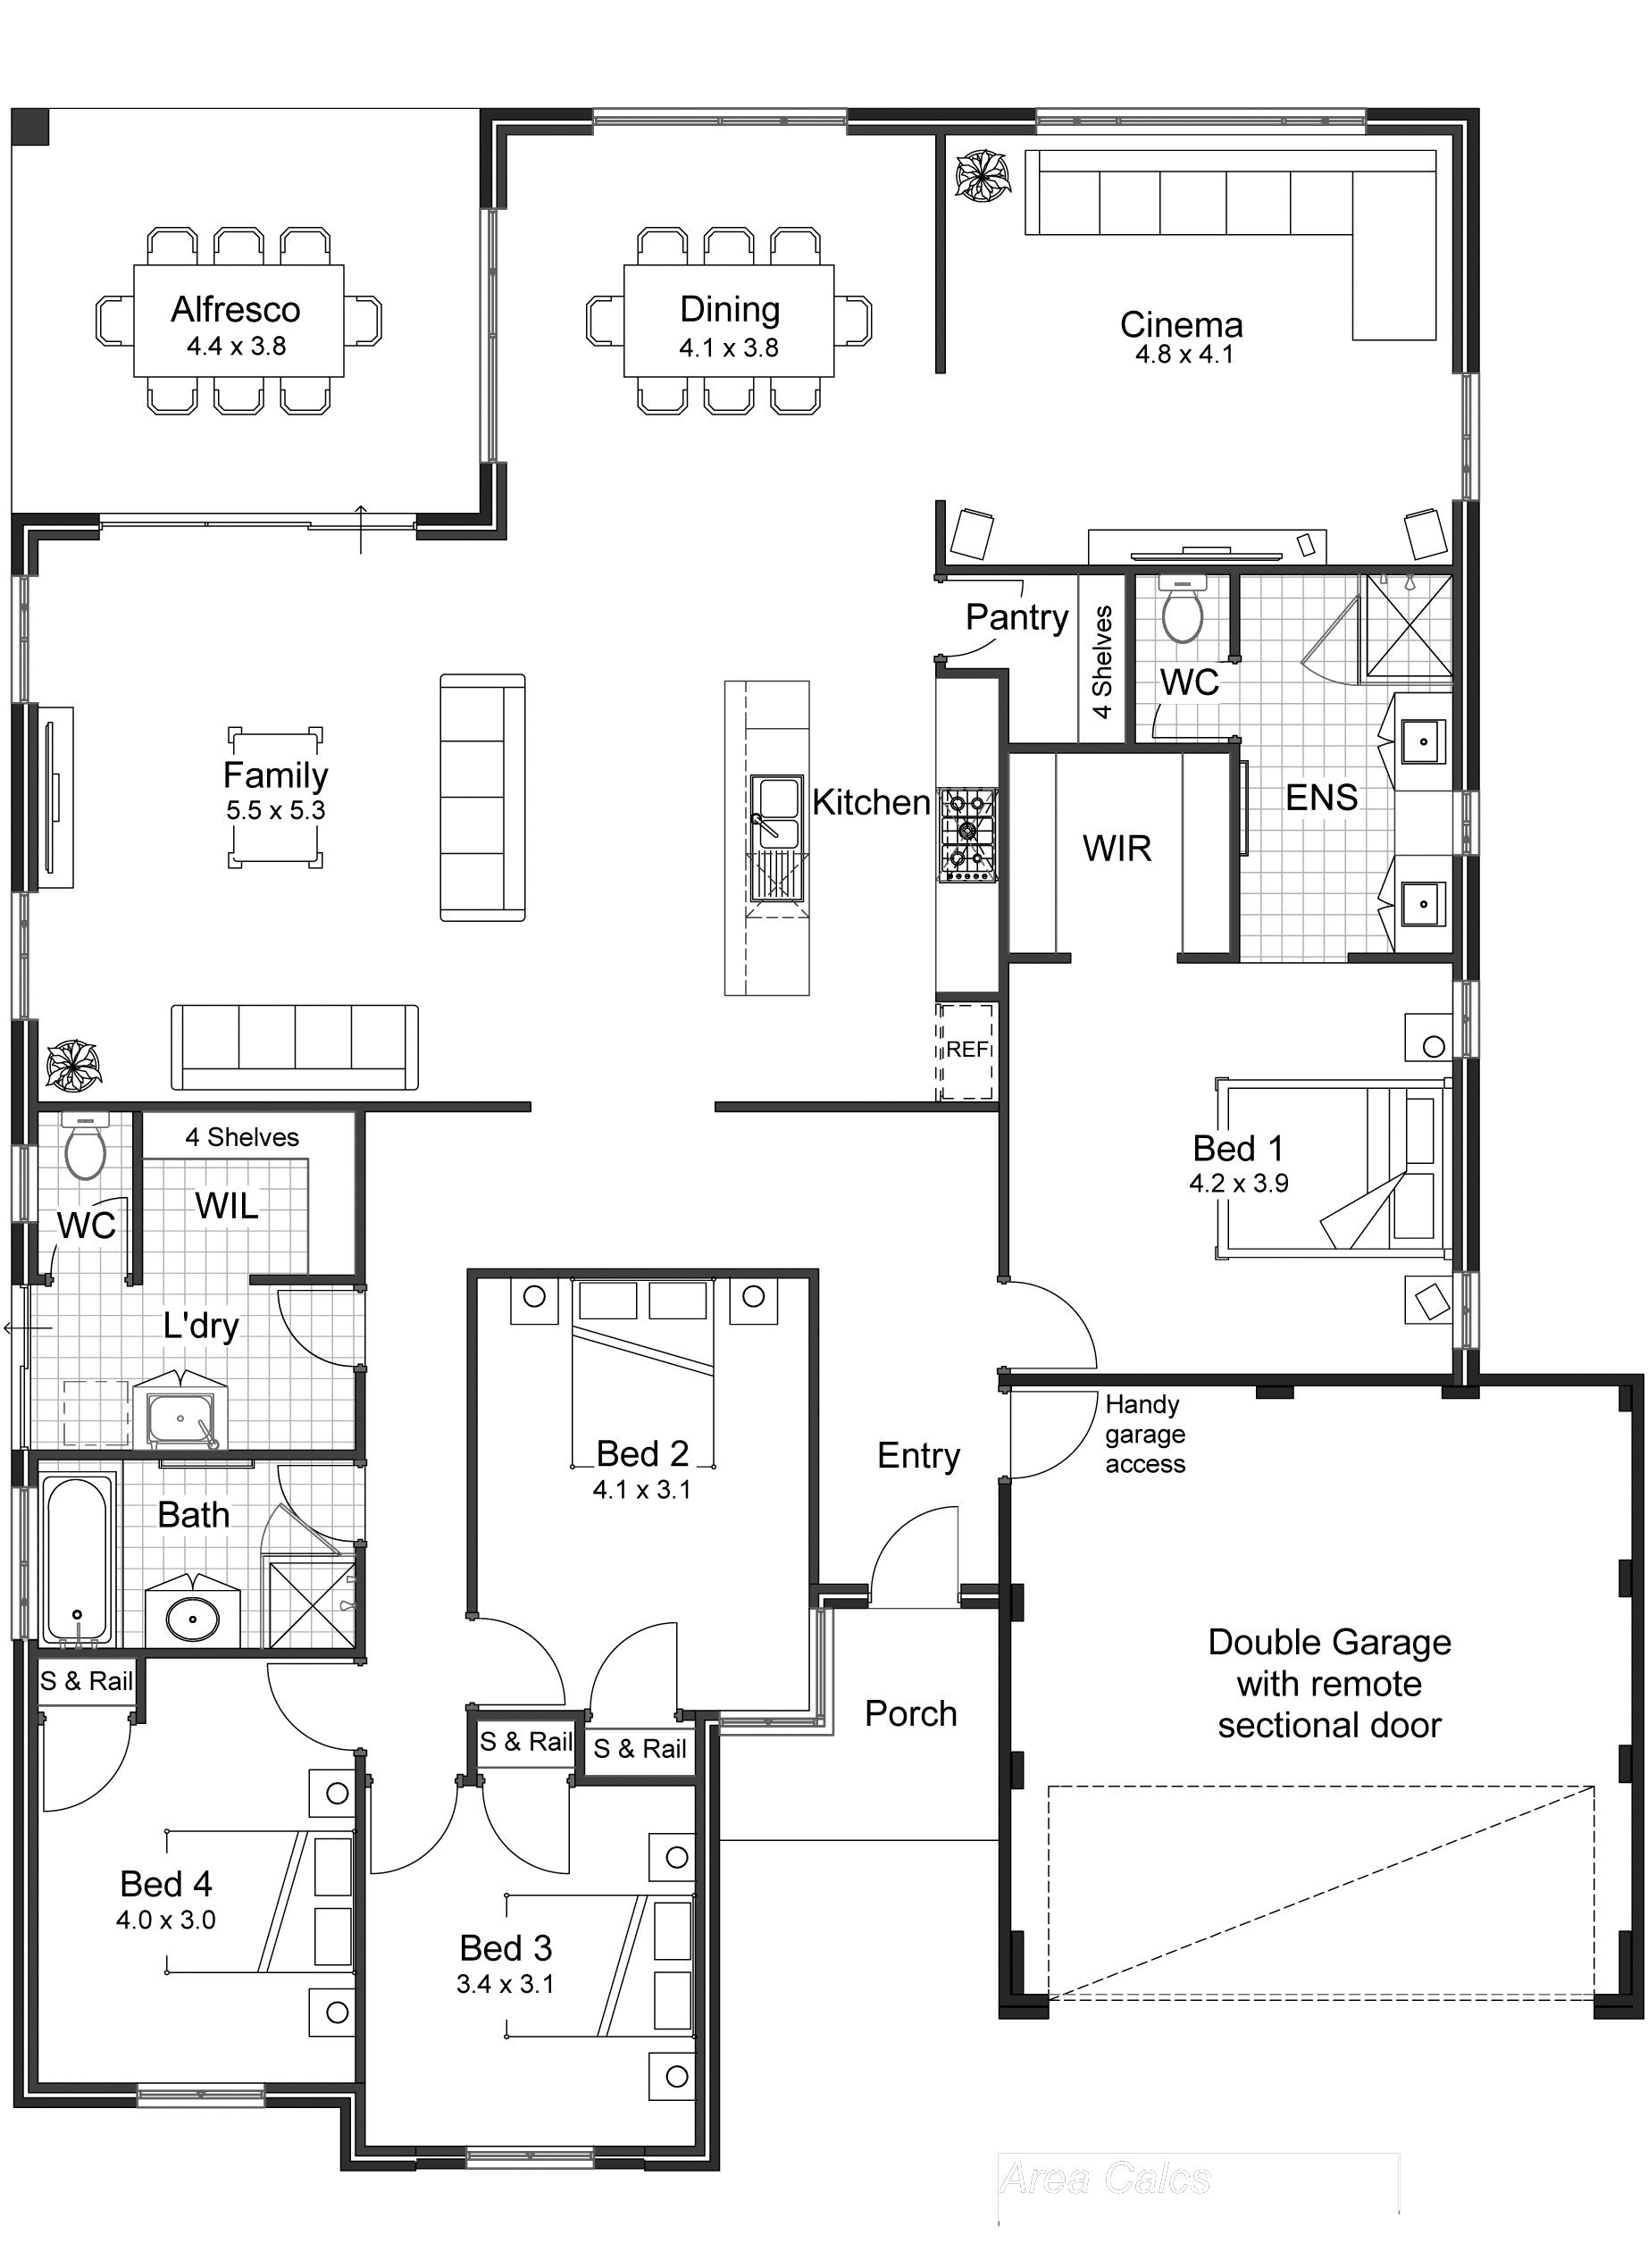 Home Floor Plans. 4 Bed 2 Bath Sq Ft. House Floor Plans With ... - ^